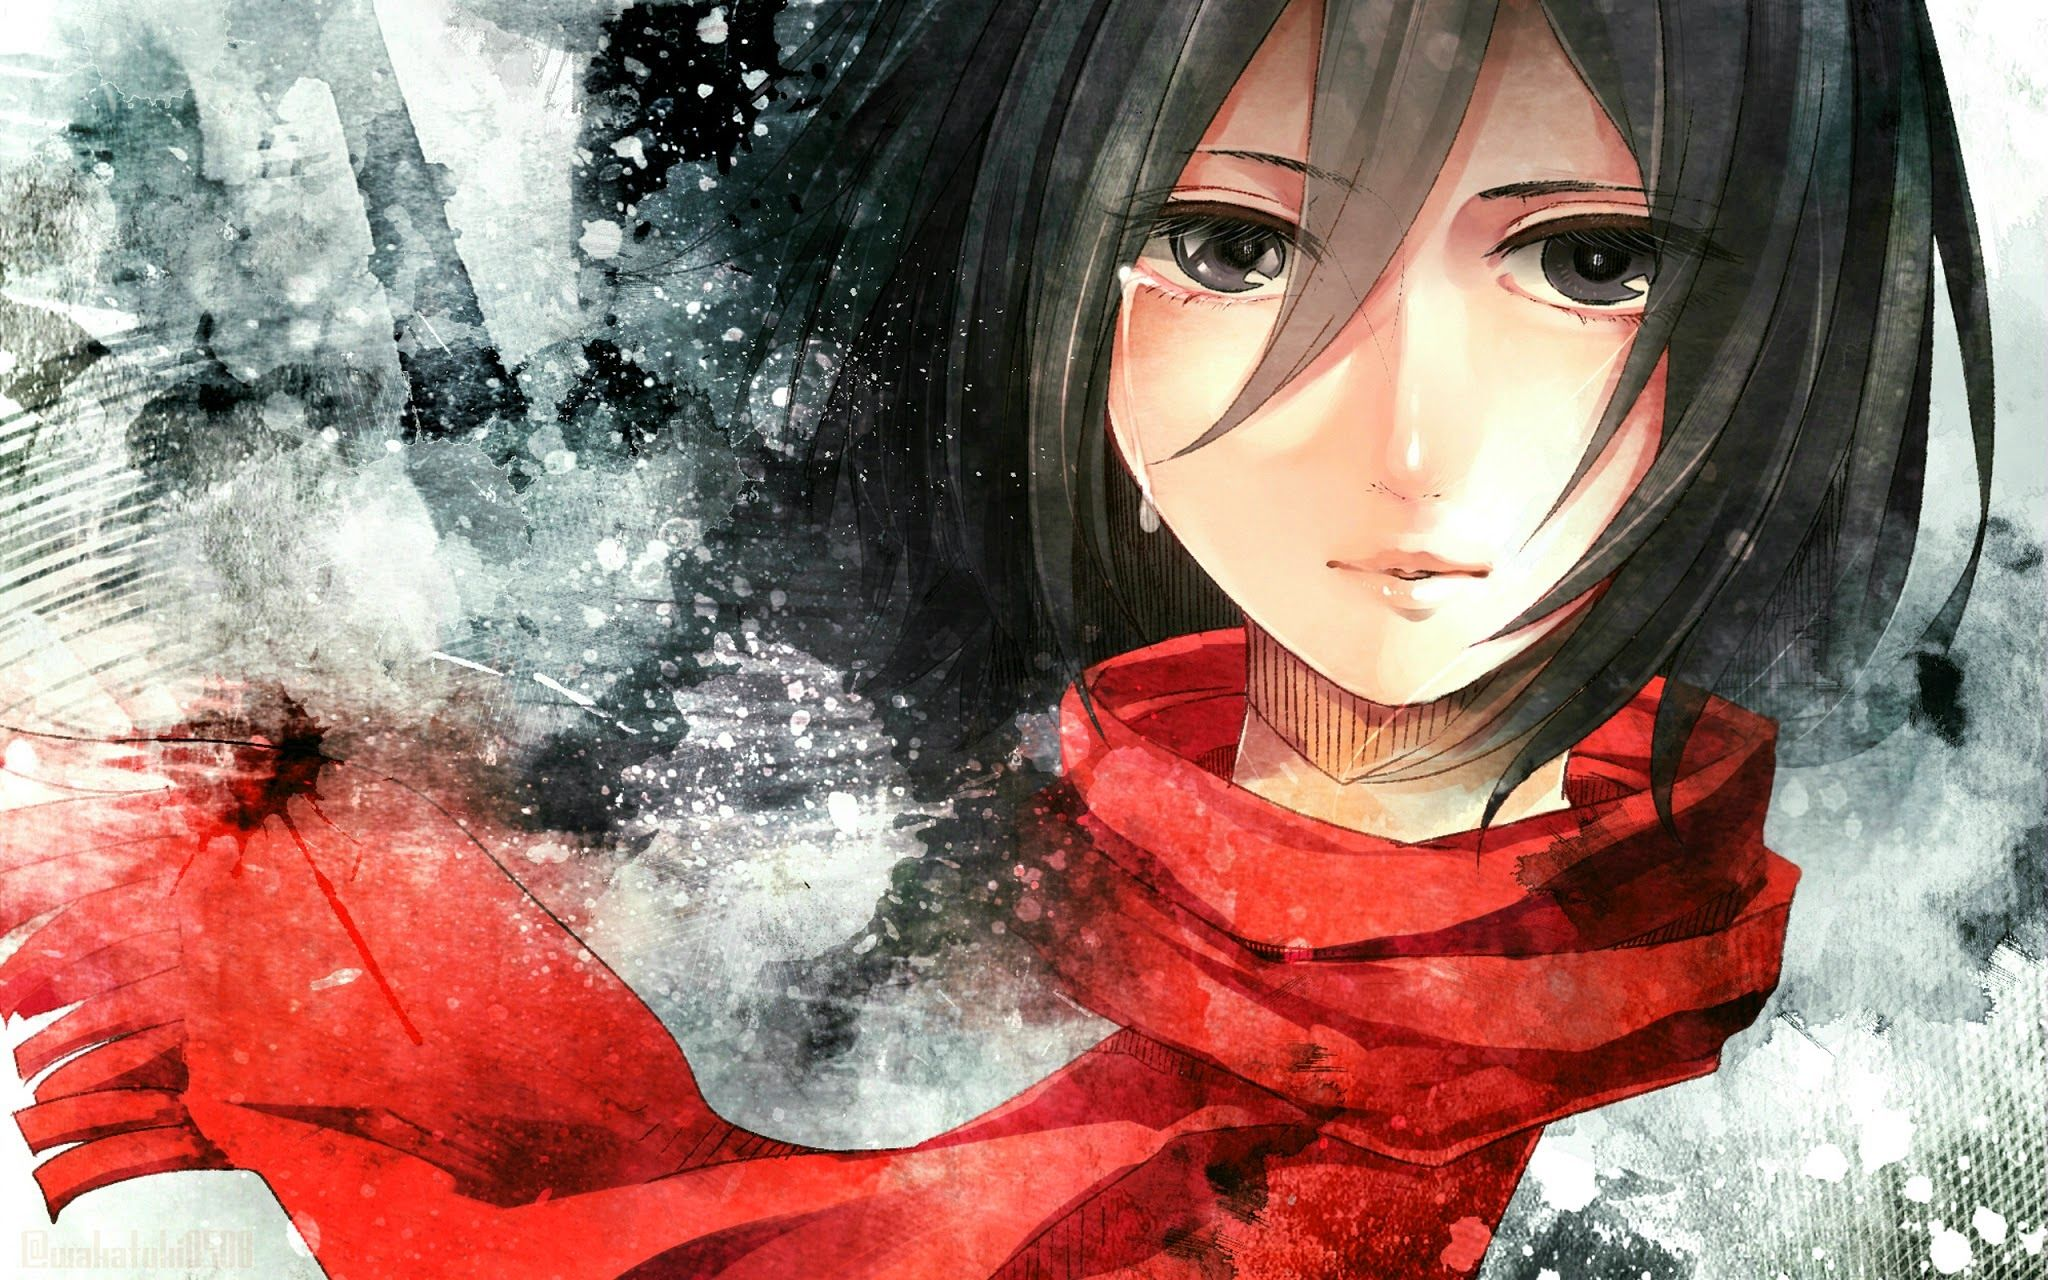 Mikasa Ackerman Anime Girl Red Scarf Crying Attack On